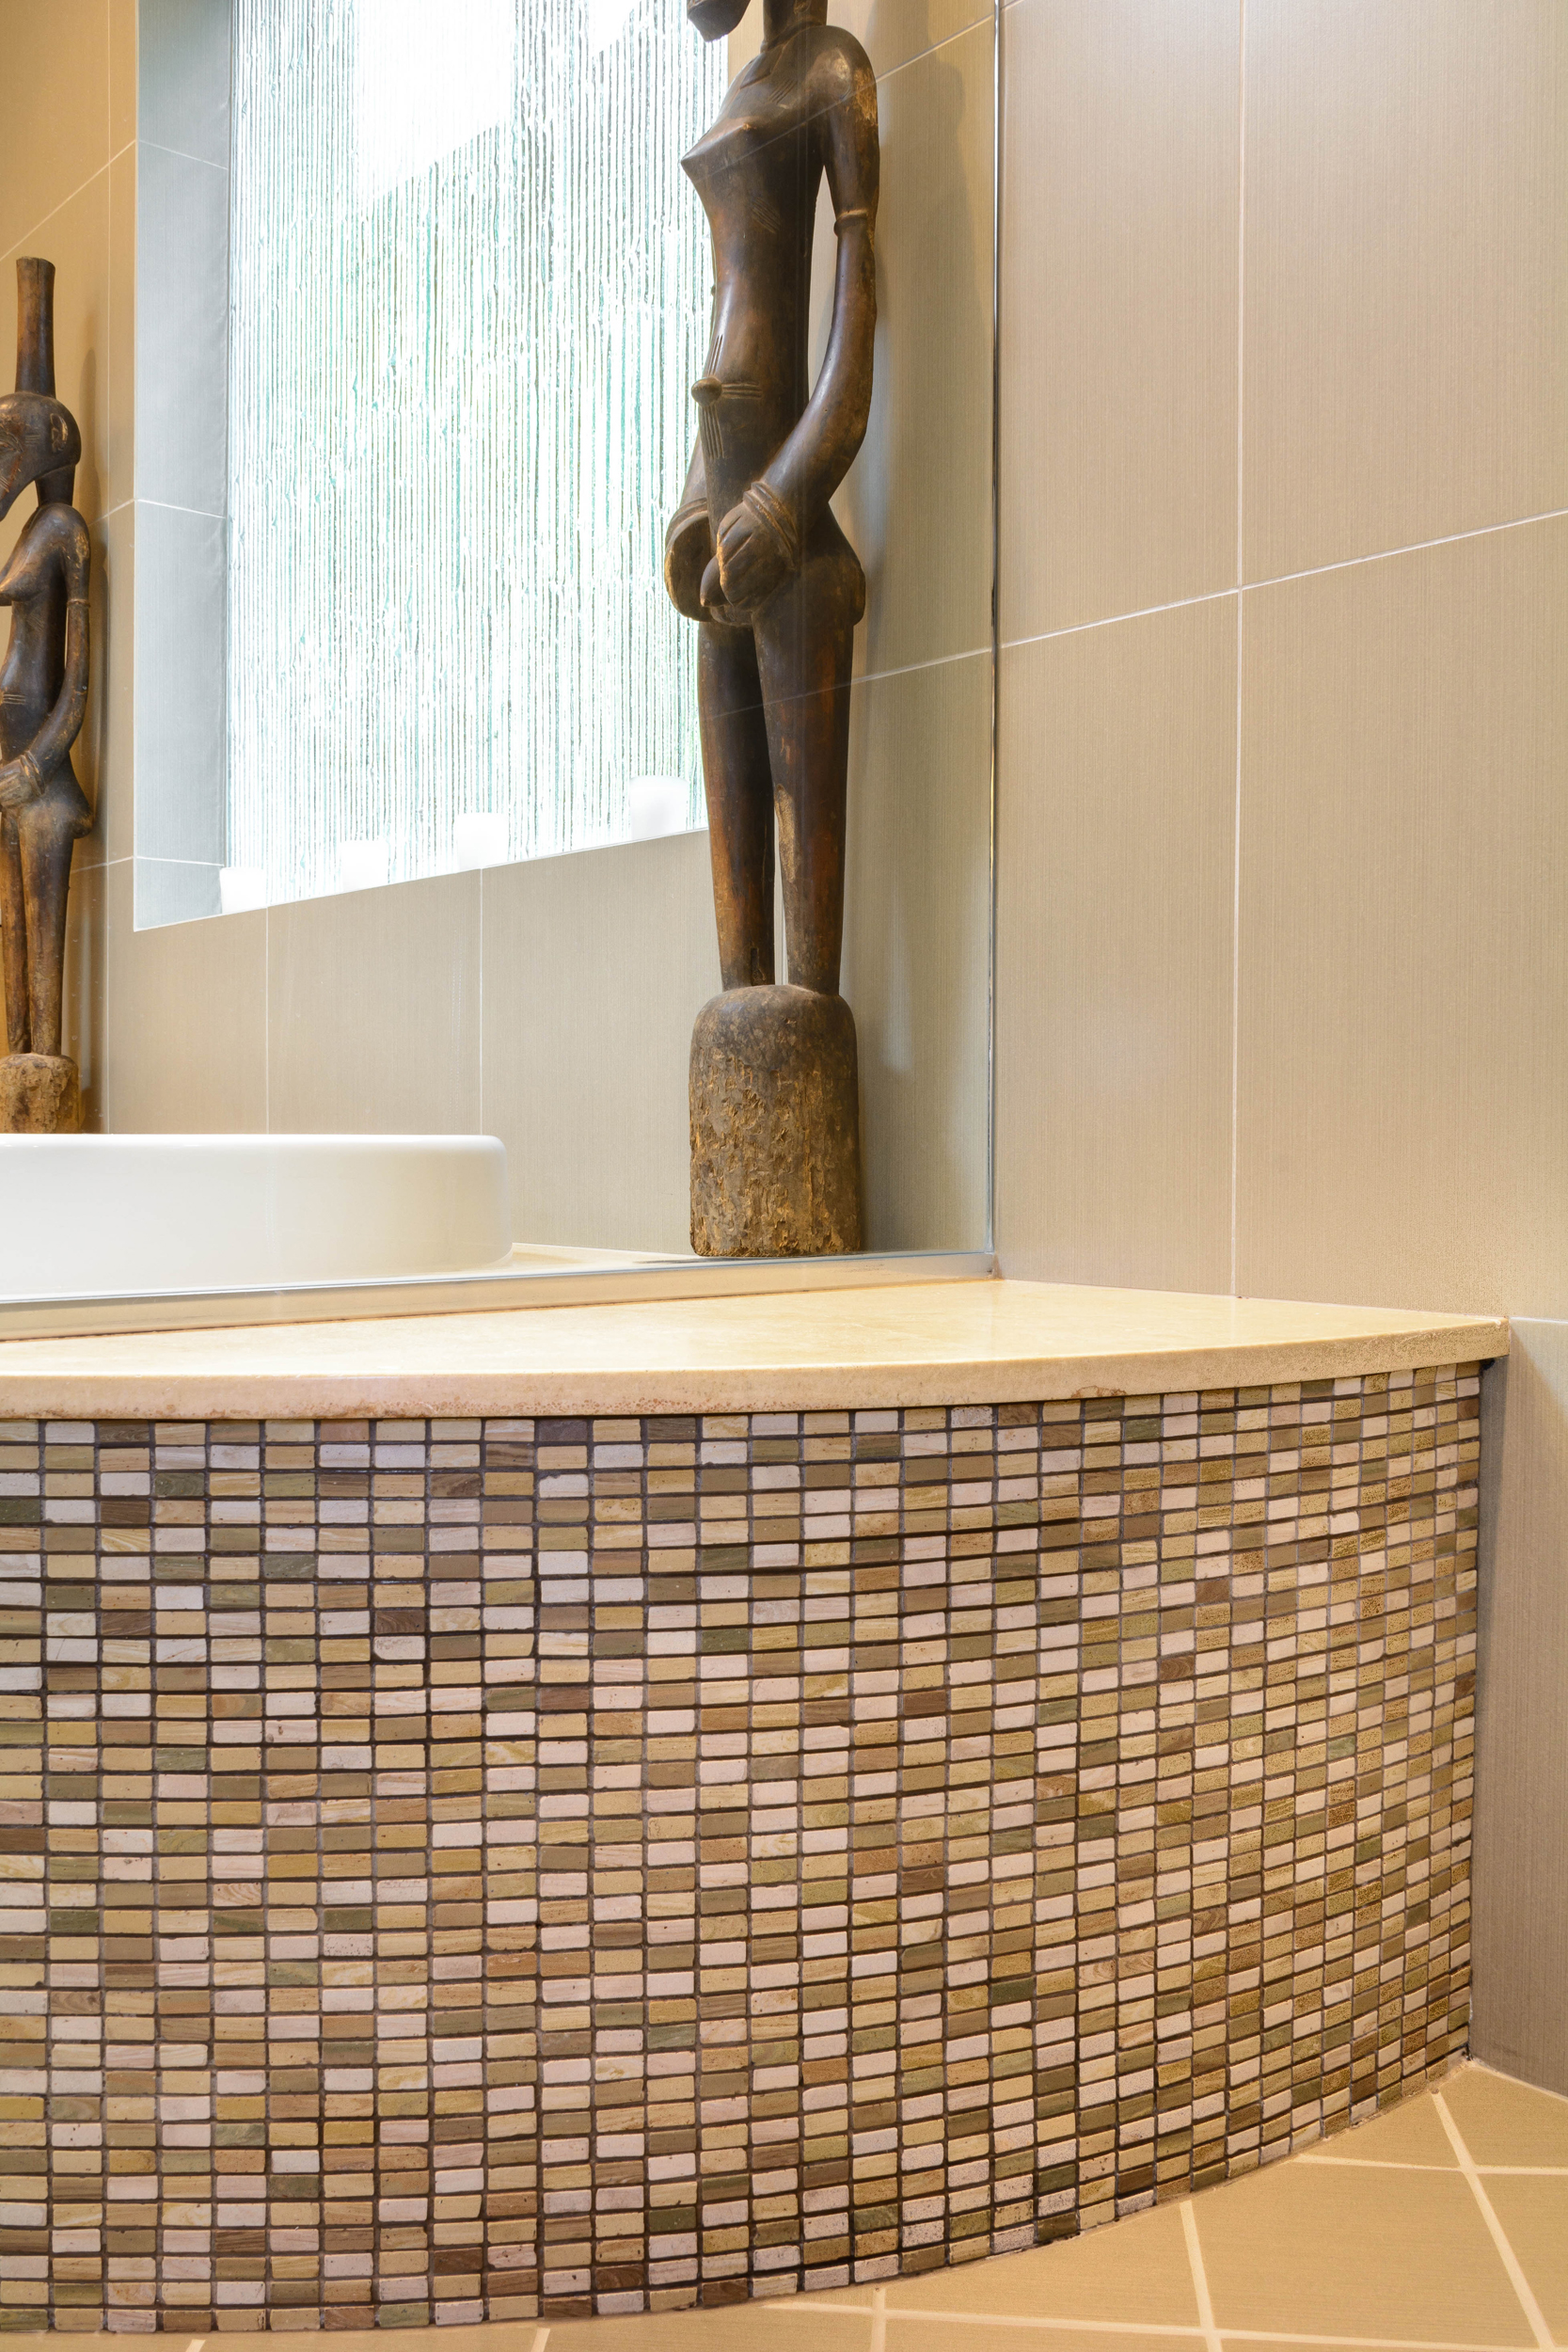 Mosaic tile bathtub surround combined with large-format wall tiles, diagonal field floor tiles and art pieces